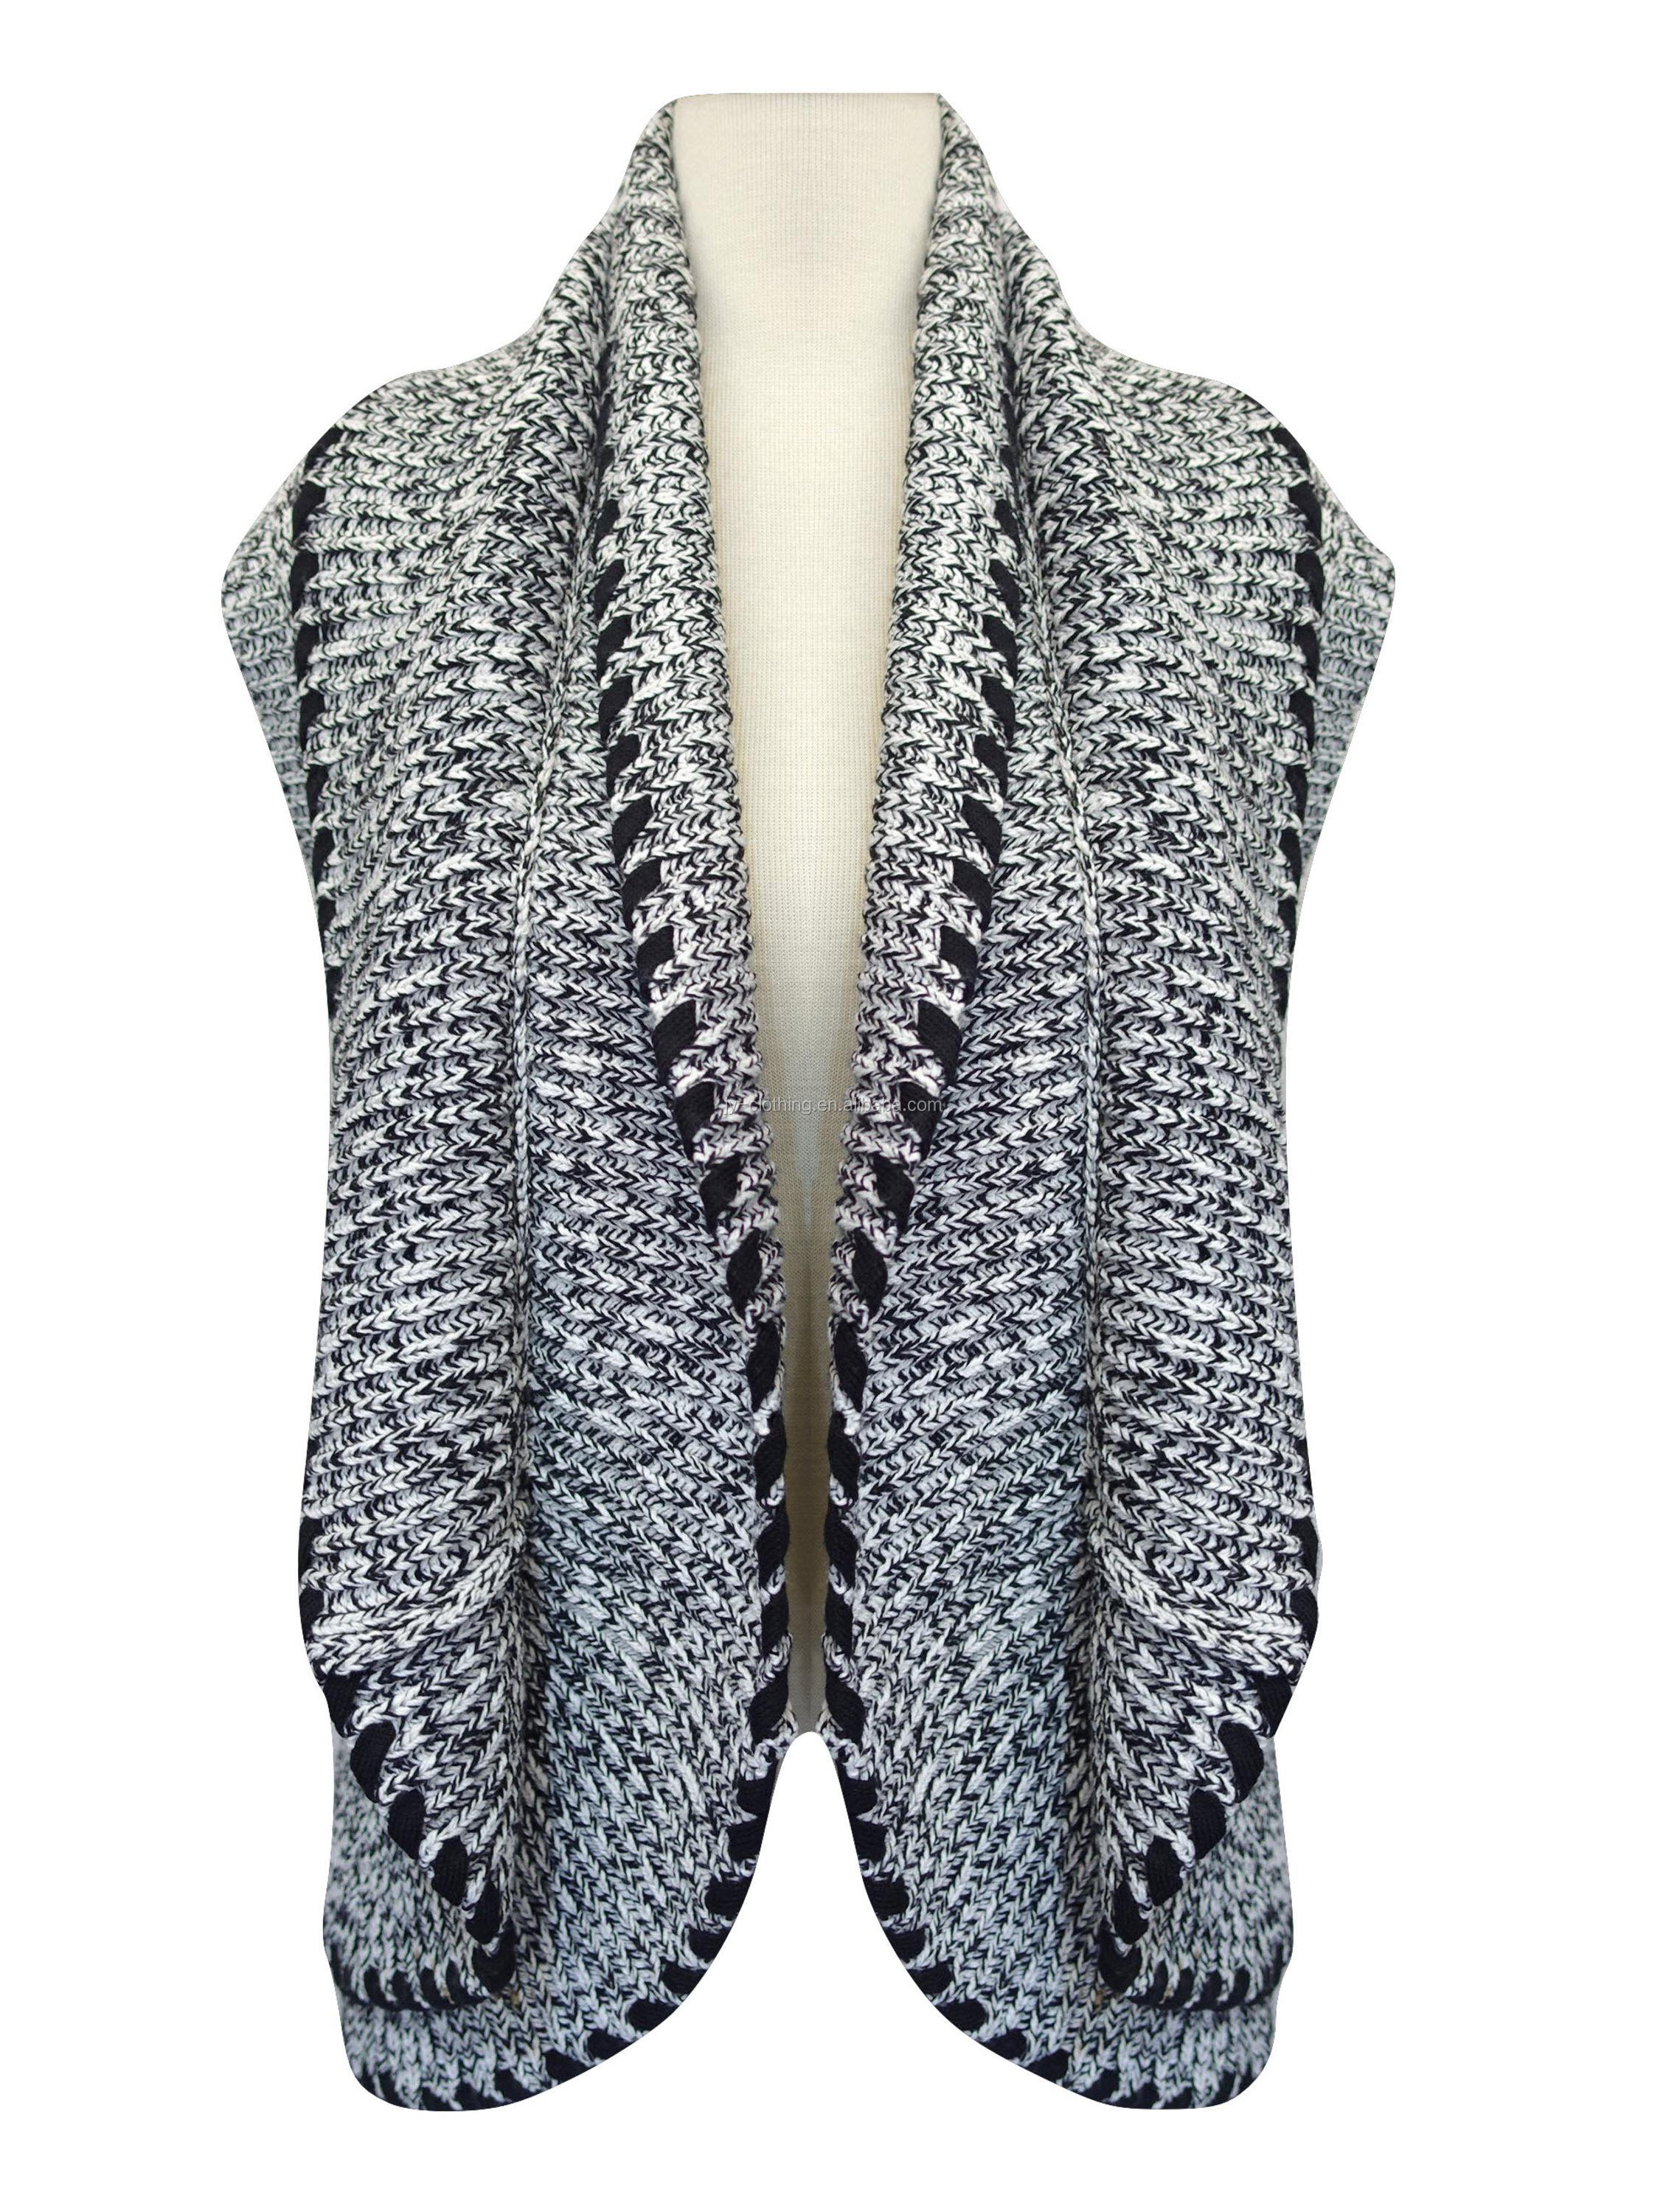 cashmere-like sleeveless ladies cardigan black white 5GG texture woman sweater with ribbon decoration